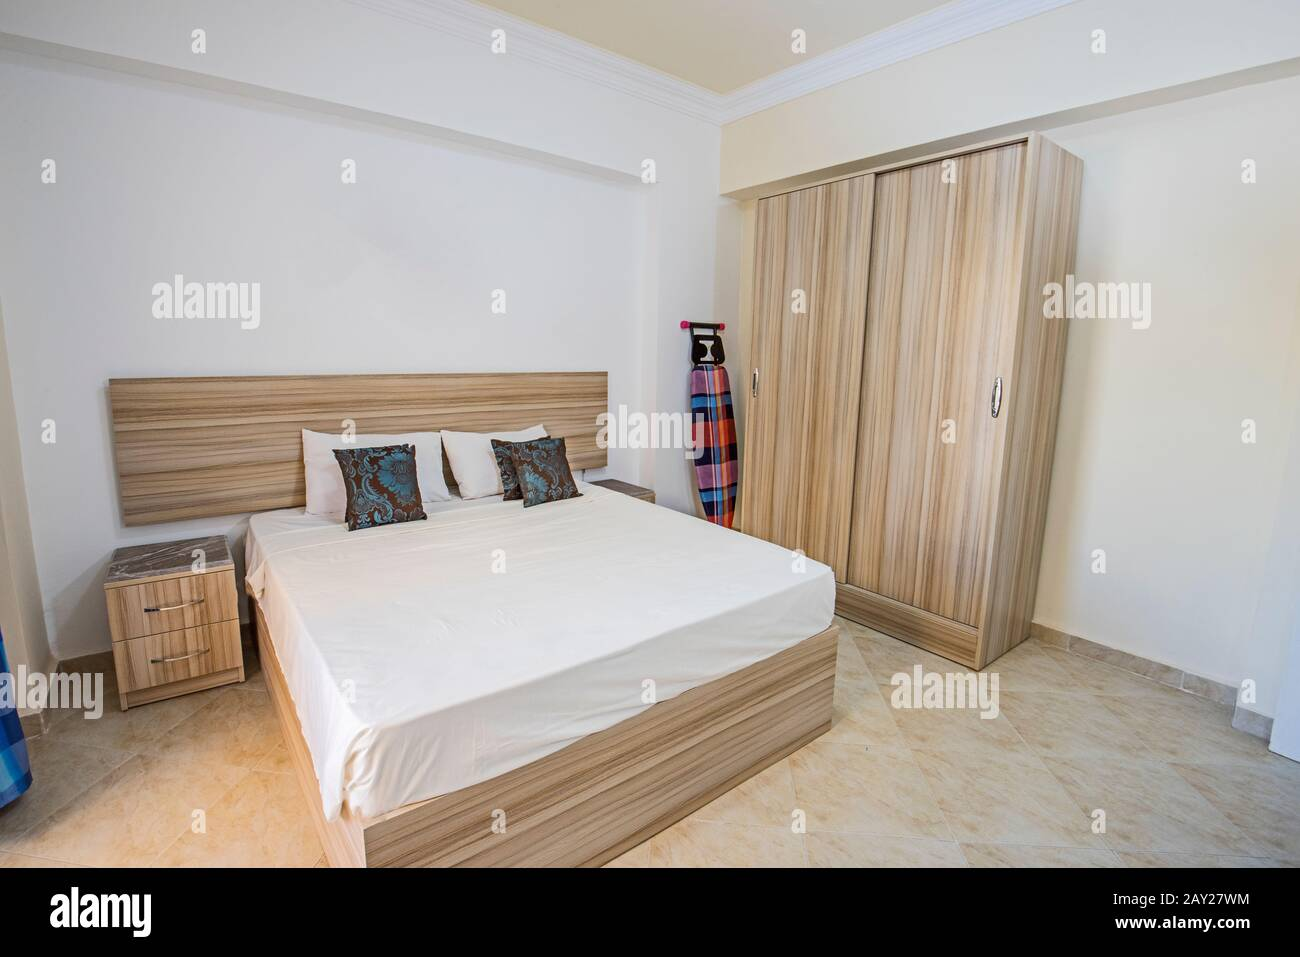 Interior Design Decor Furnishing Of Luxury Apartment Bedroom With Double Bed And Wardrobe Stock Photo Alamy